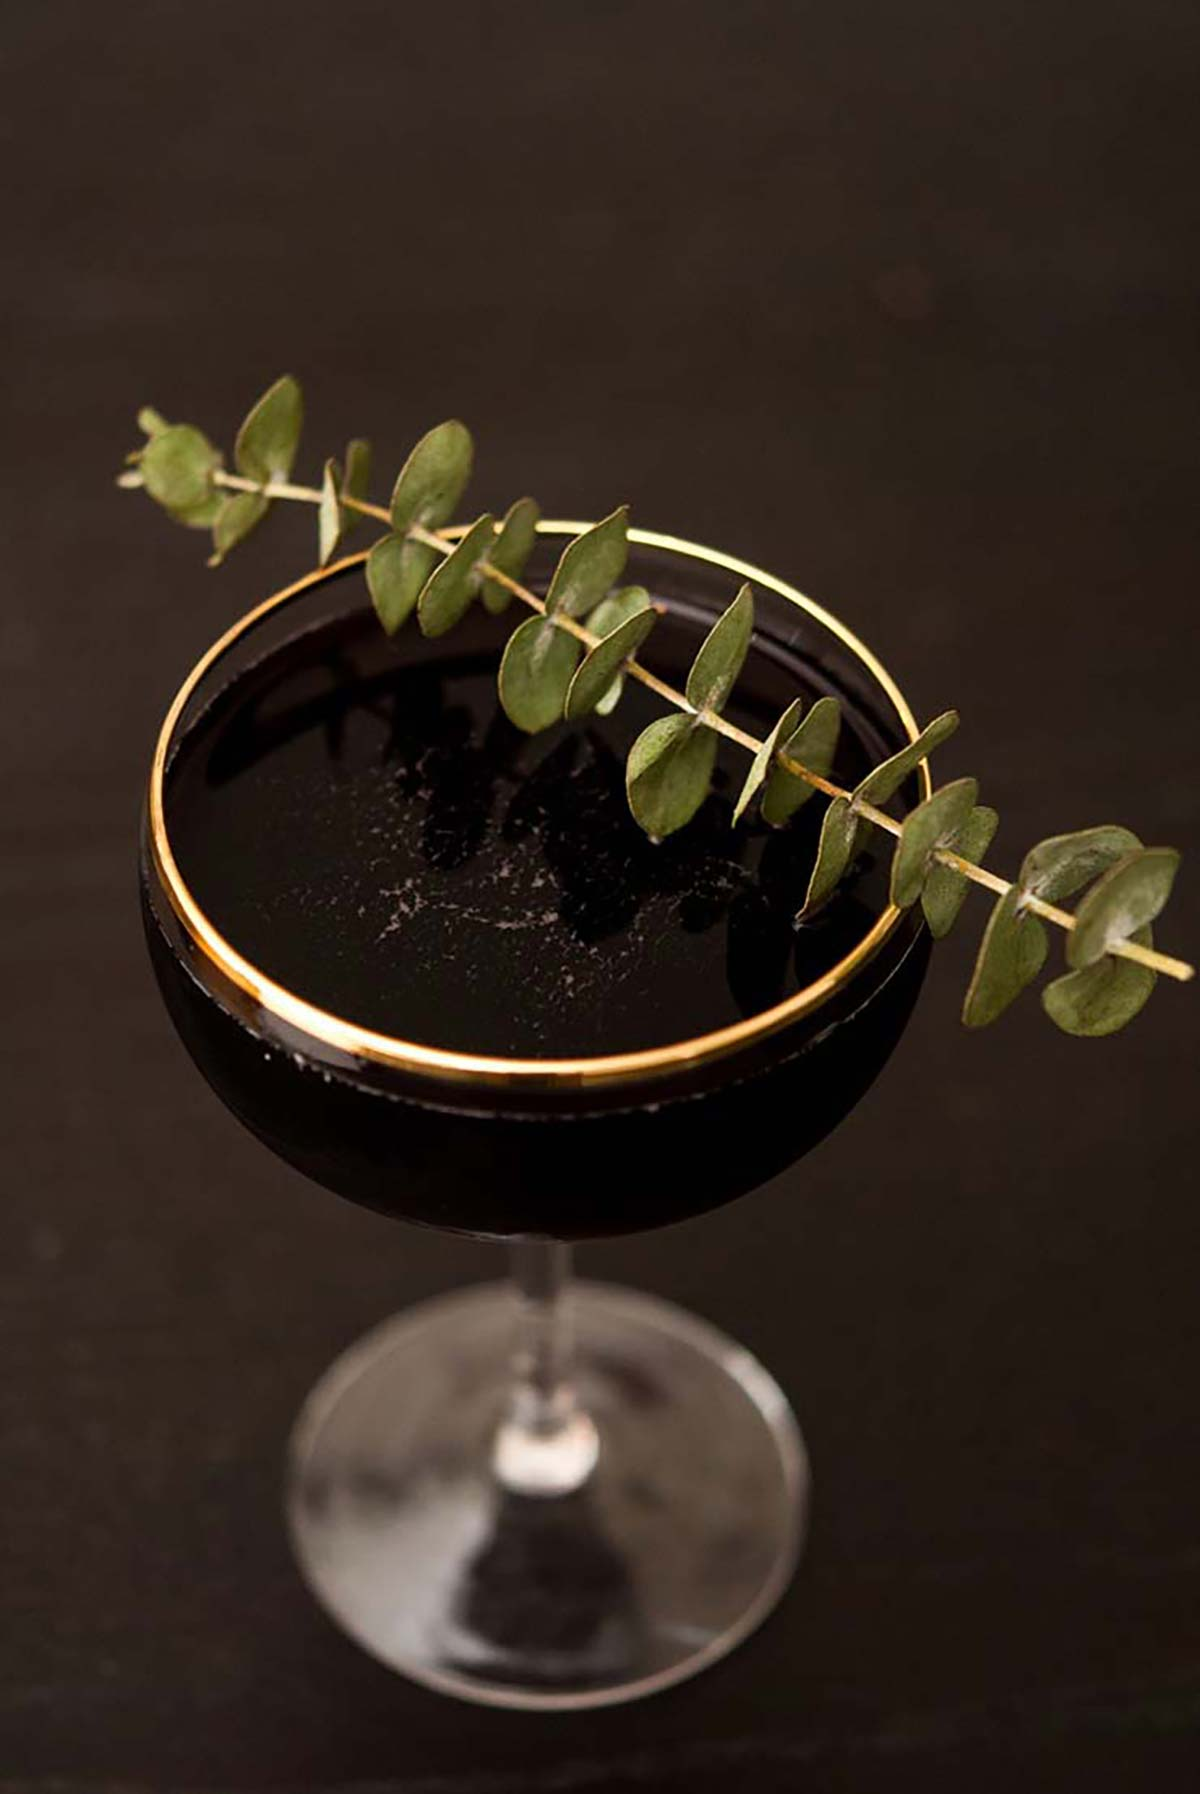 A dark cocktail in a gold rimmed glass, garnished with eucalyptus.